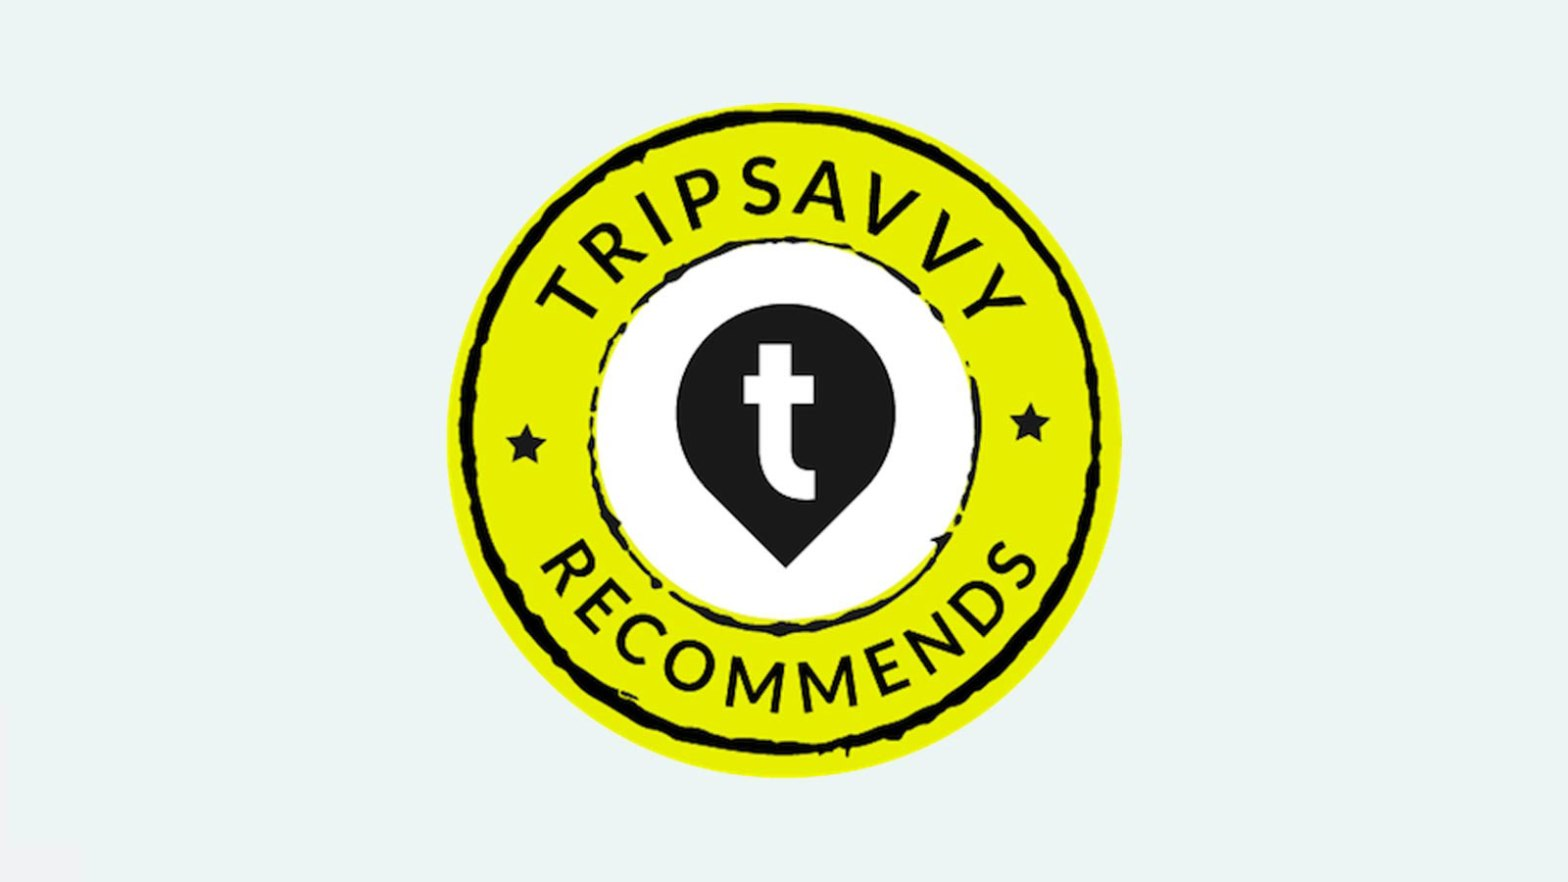 Trip savvy recommends logo